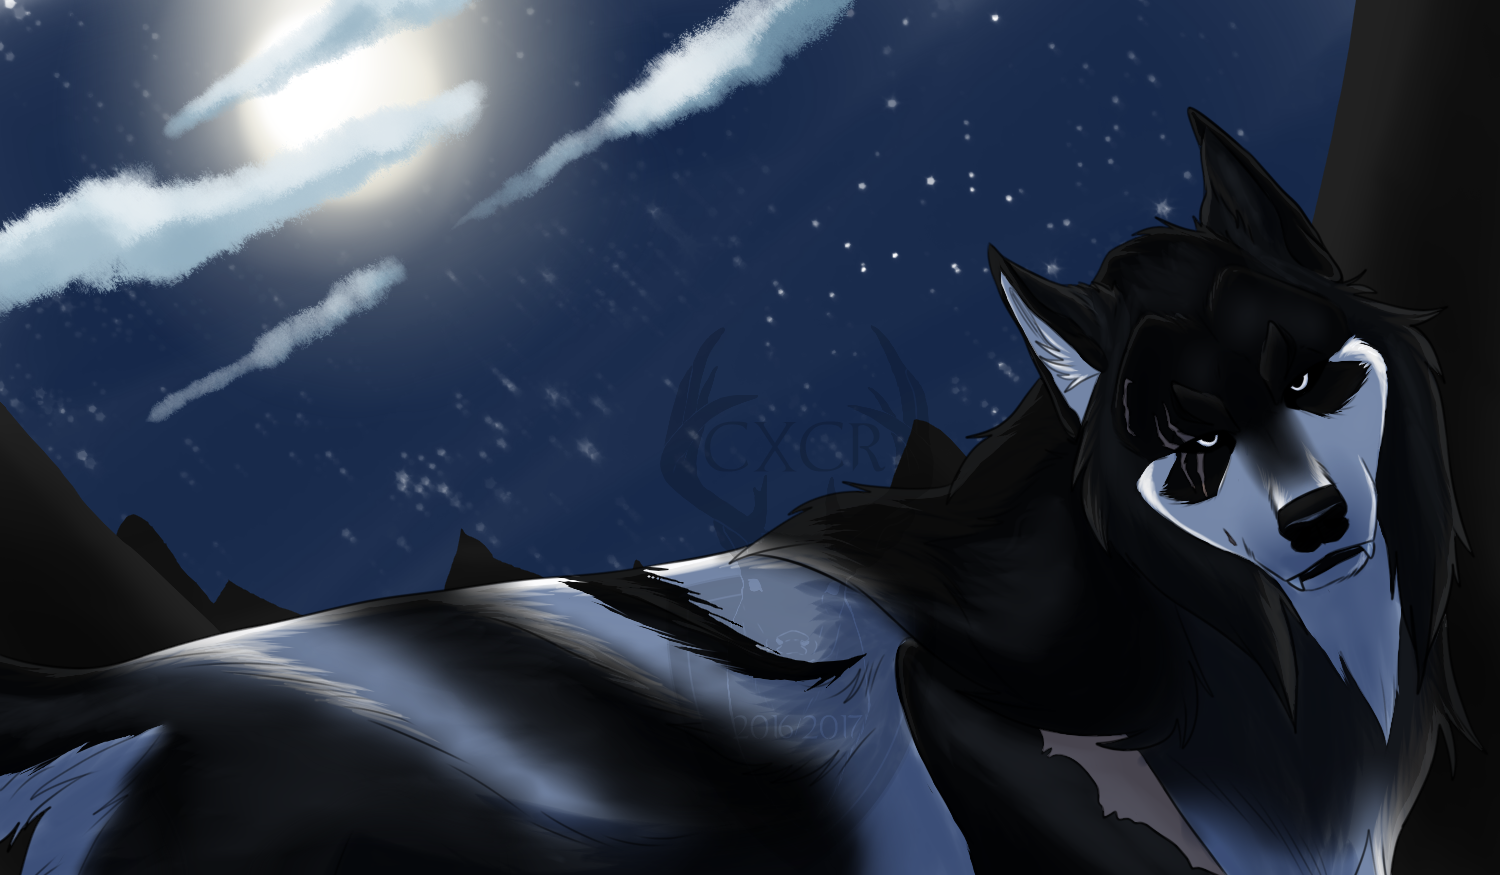 WoLF: A Monster In The Night by CXCR